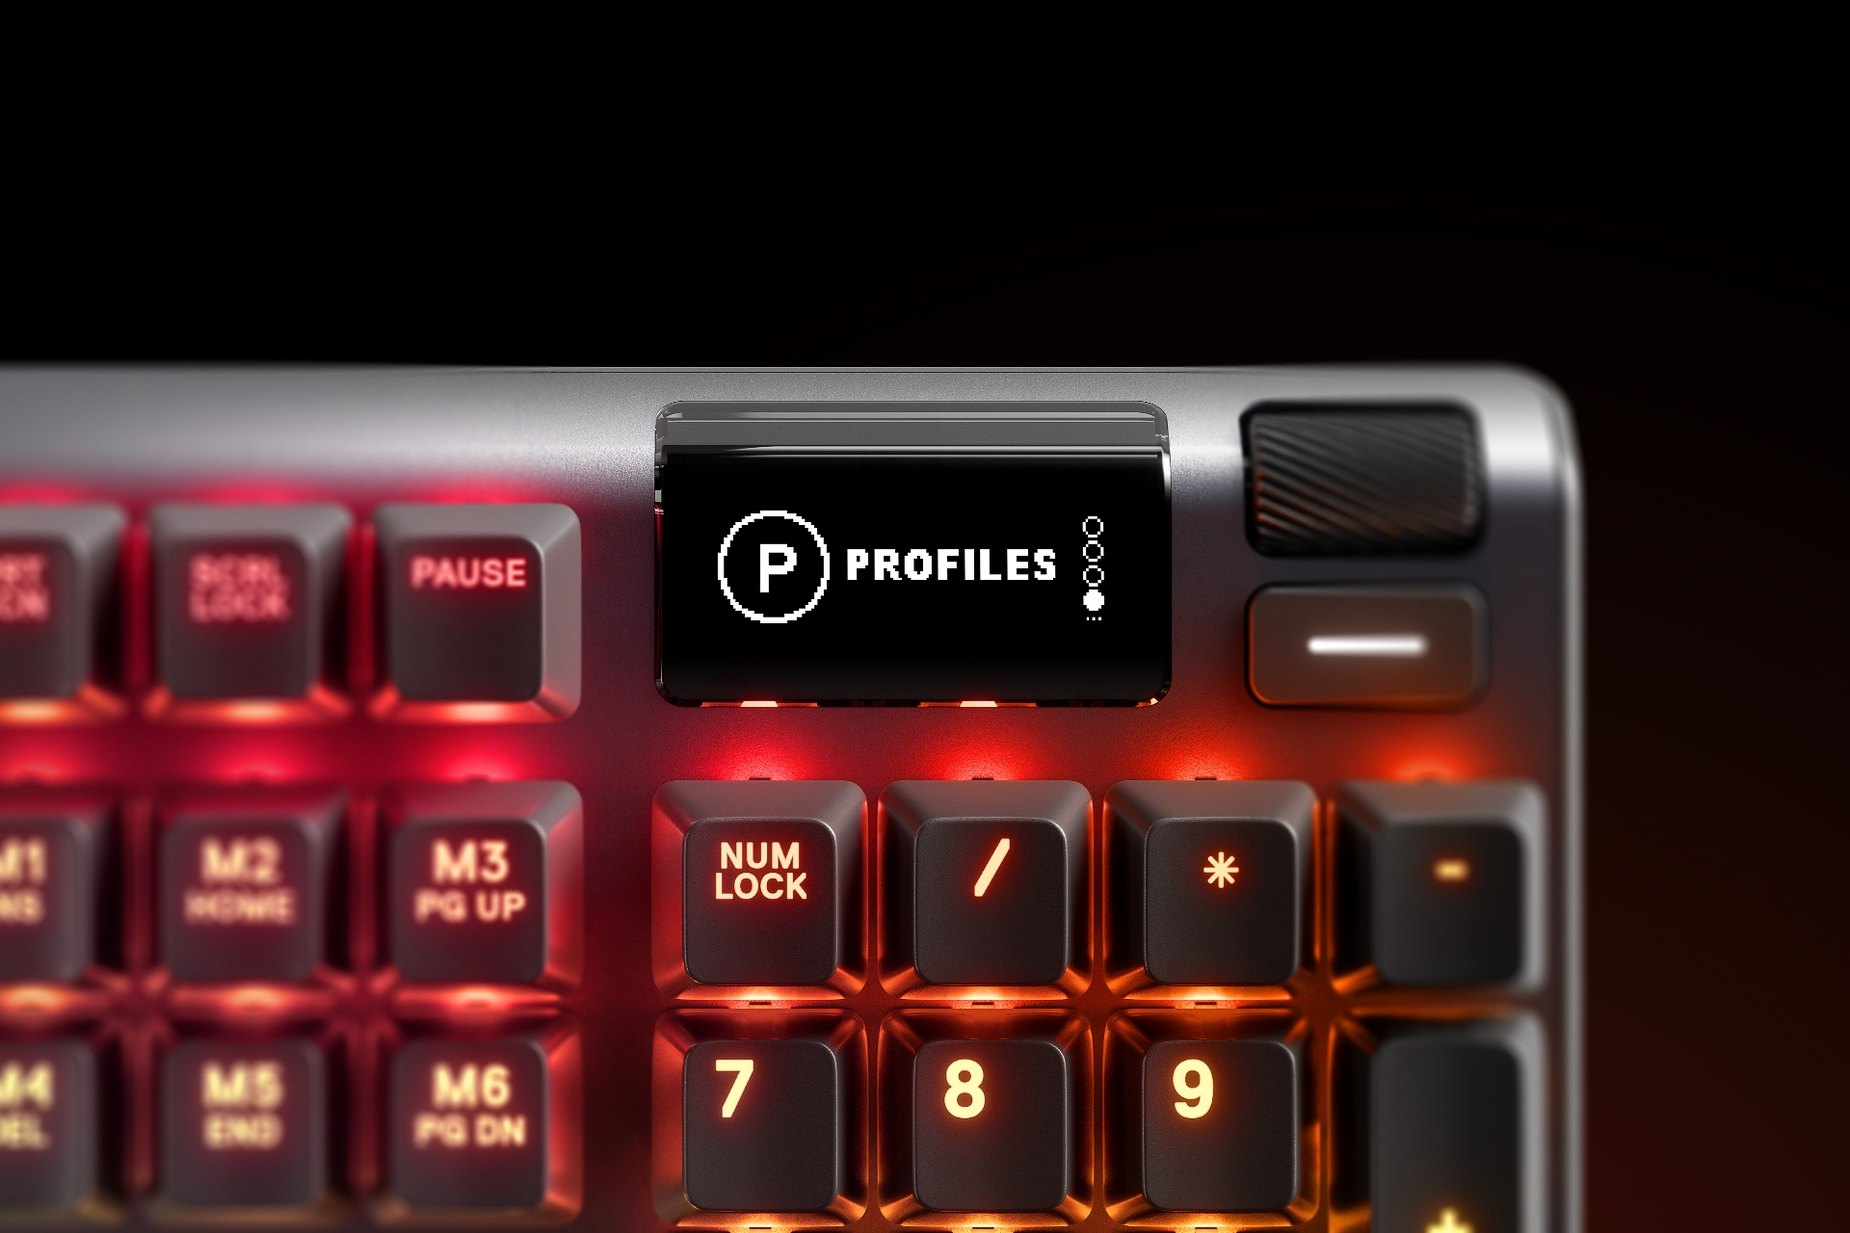 Zoomed in view of the multimedia and settings controls/volume roller on the Nordic - Apex 7 (Blue Switch) gaming keyboard